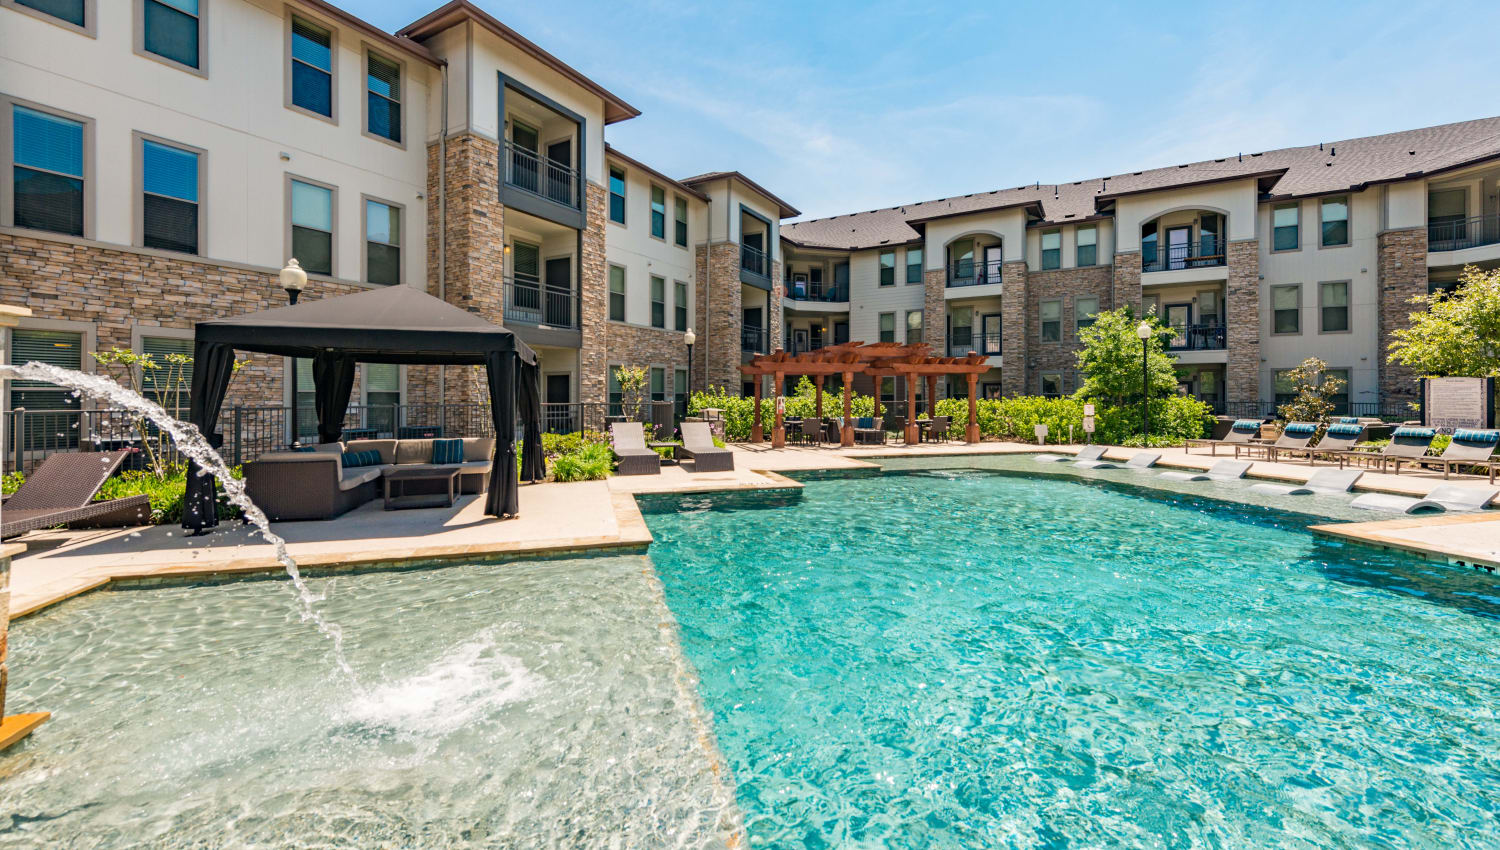 Beautiful swimming pool and fountain at Olympus at Waterside Estates in Richmond, Texas